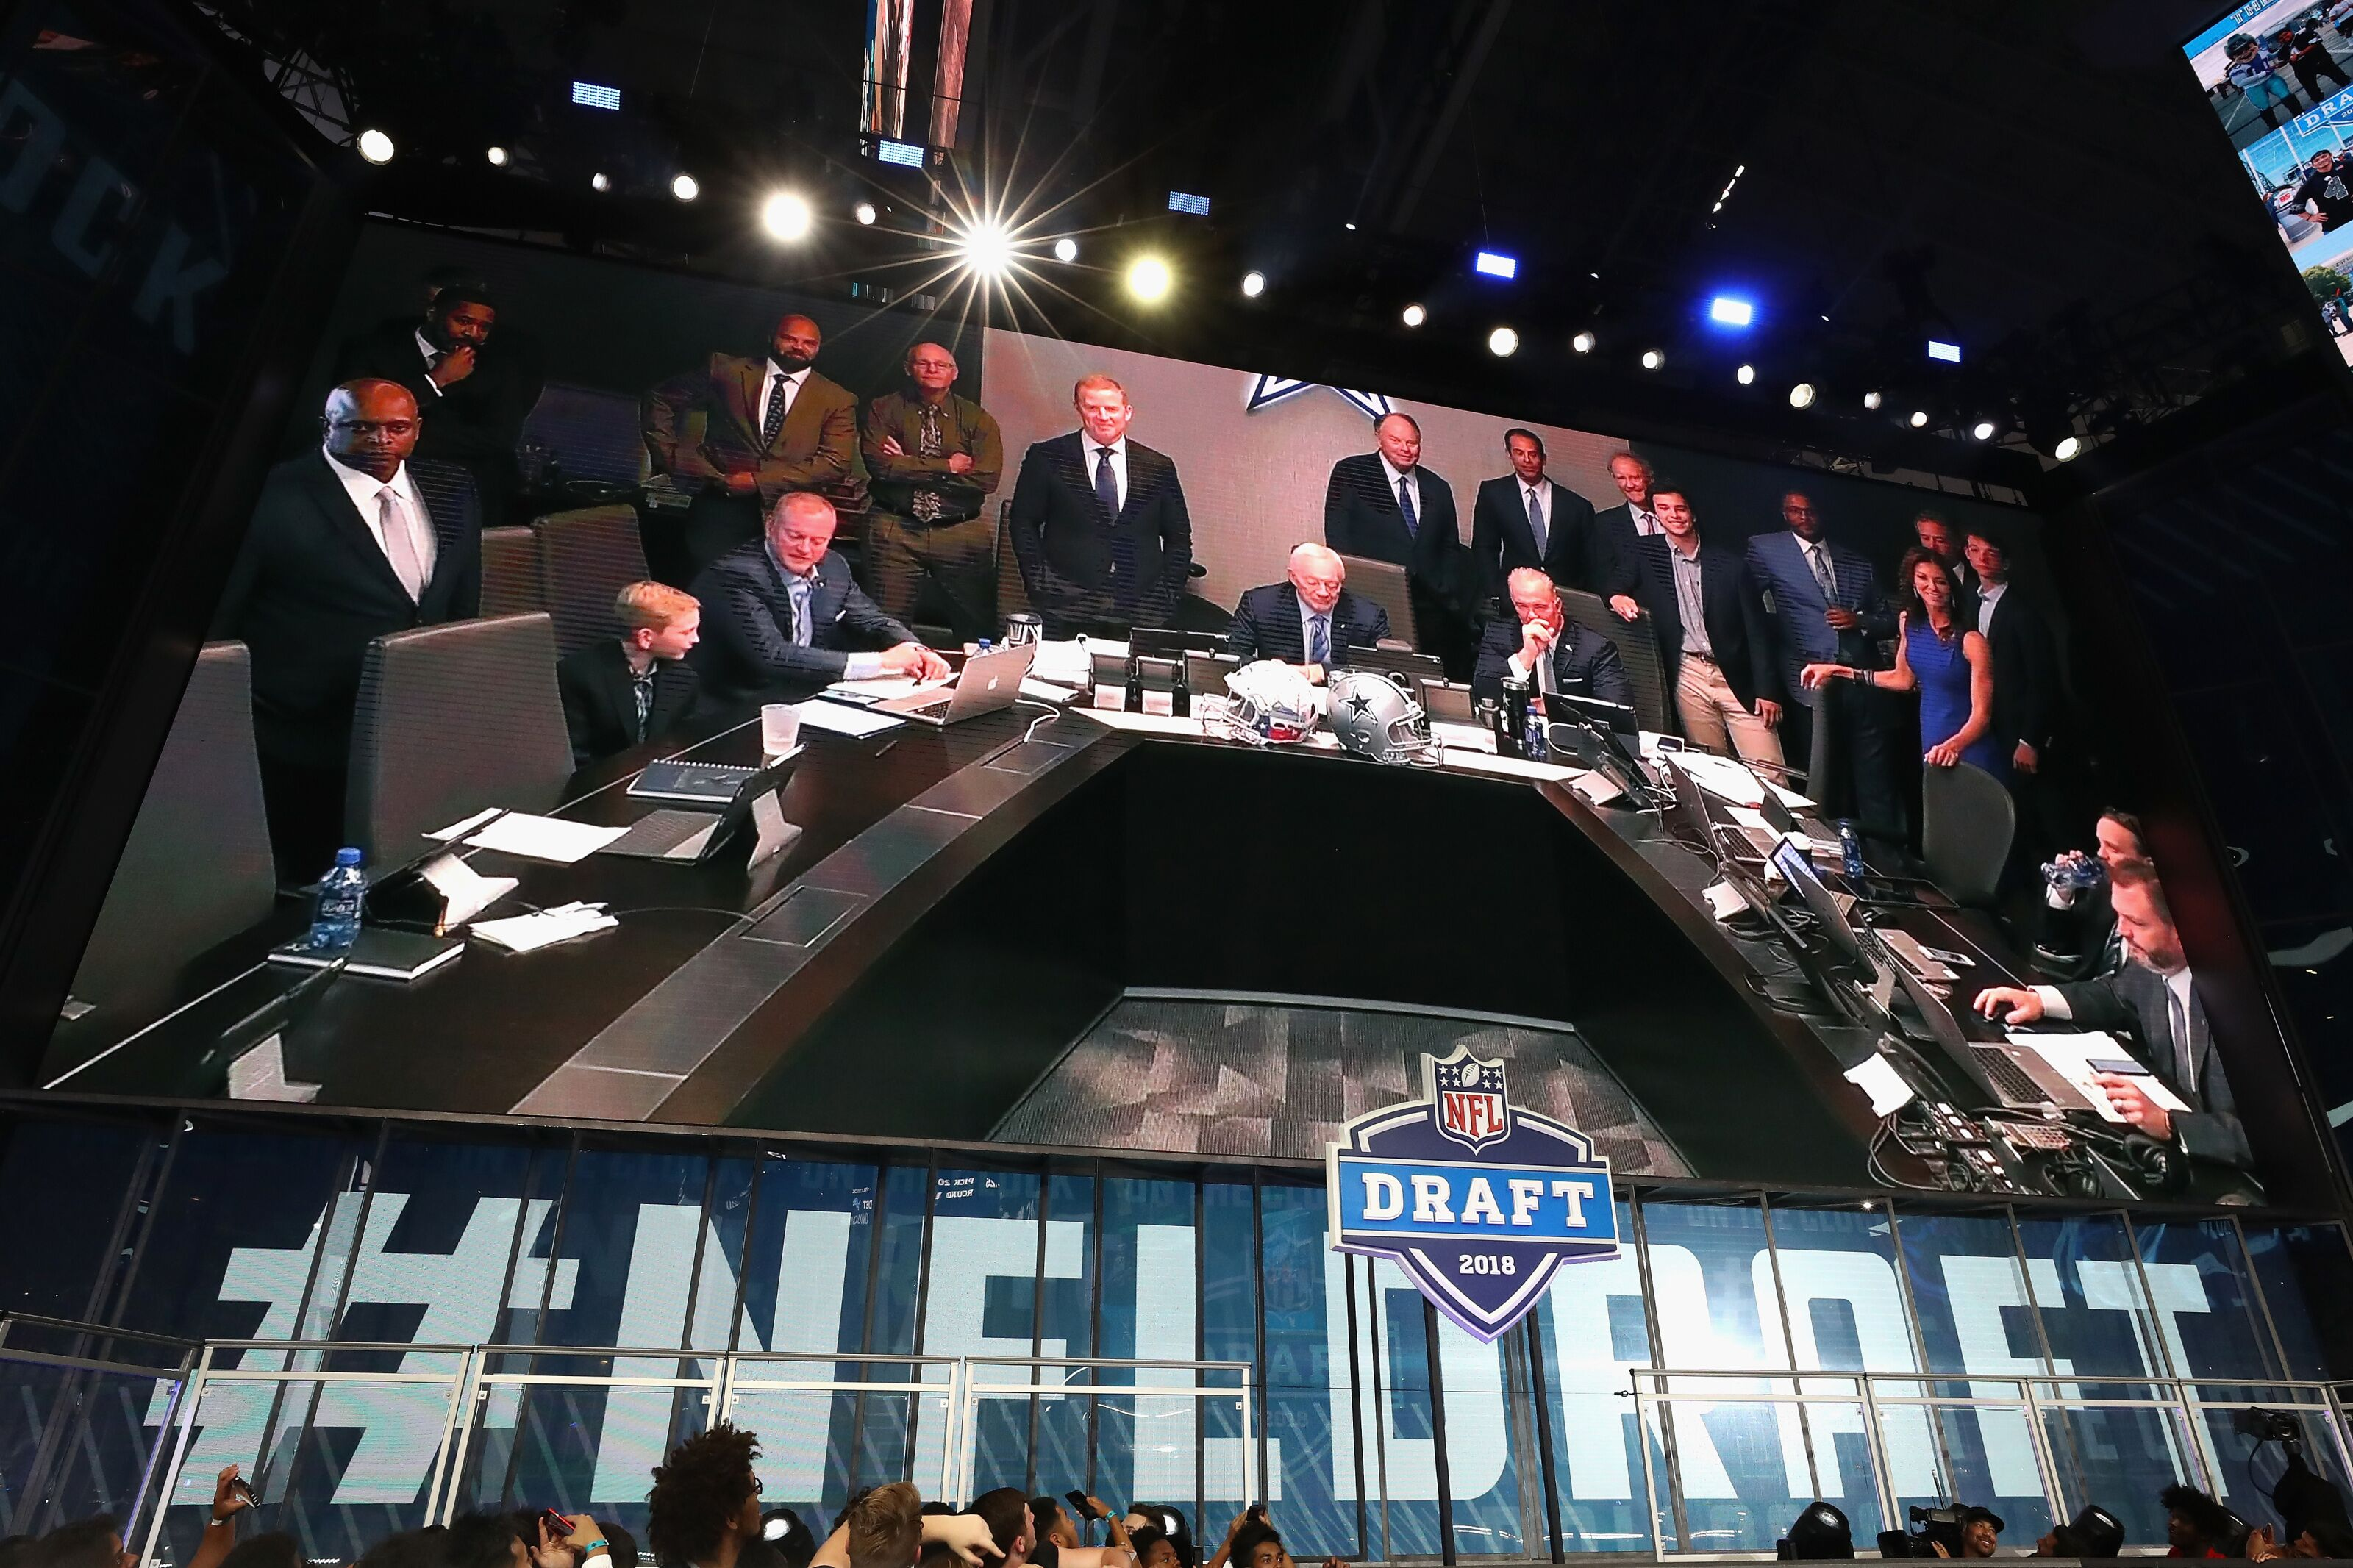 Just how good have the Dallas Cowboys been in the draft?